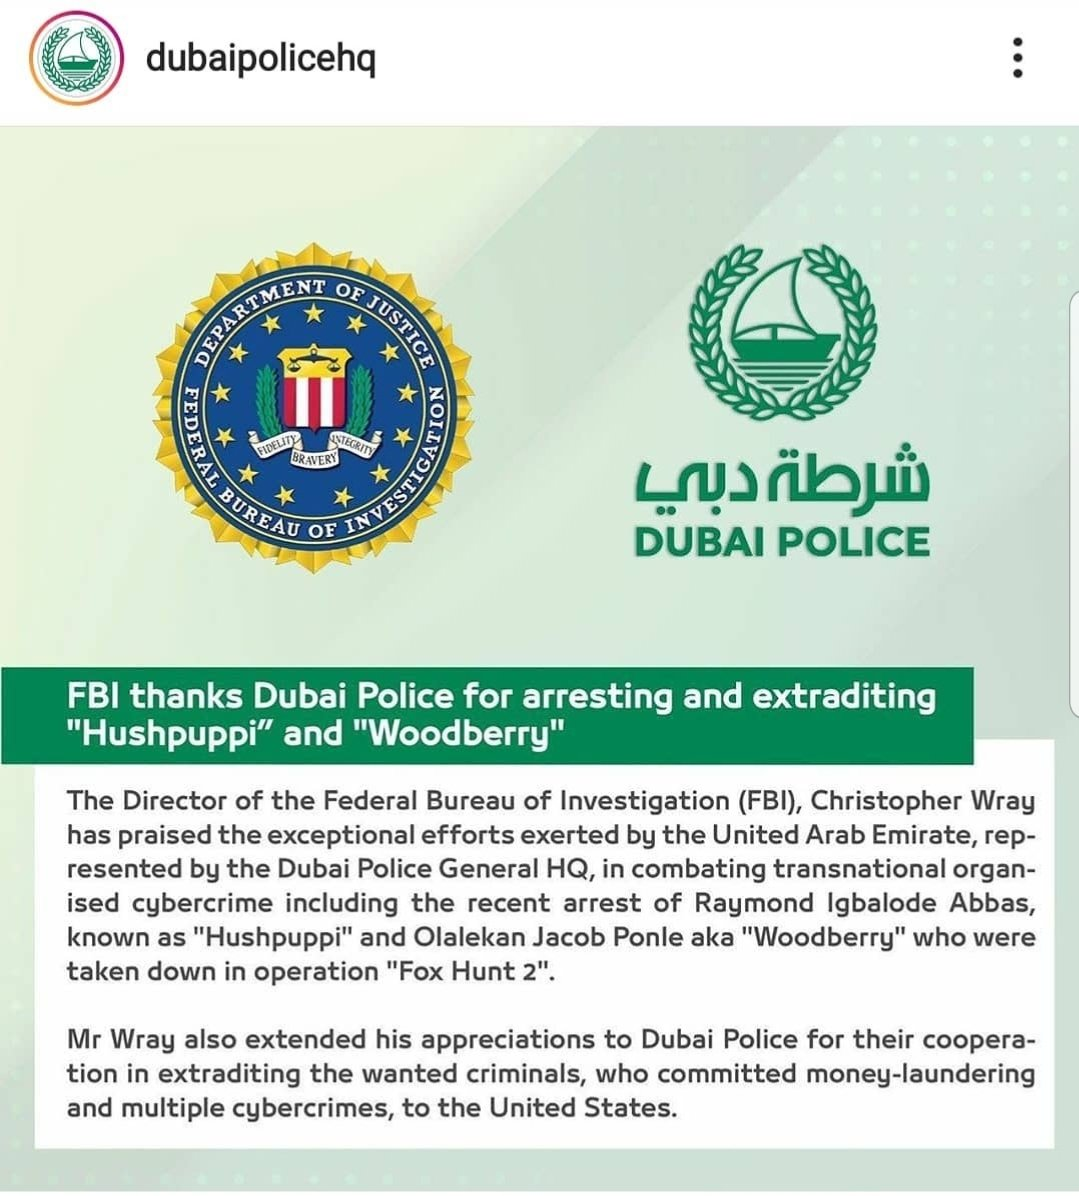 Dubai police hand over Hushpuppi and Woodberry to FBI